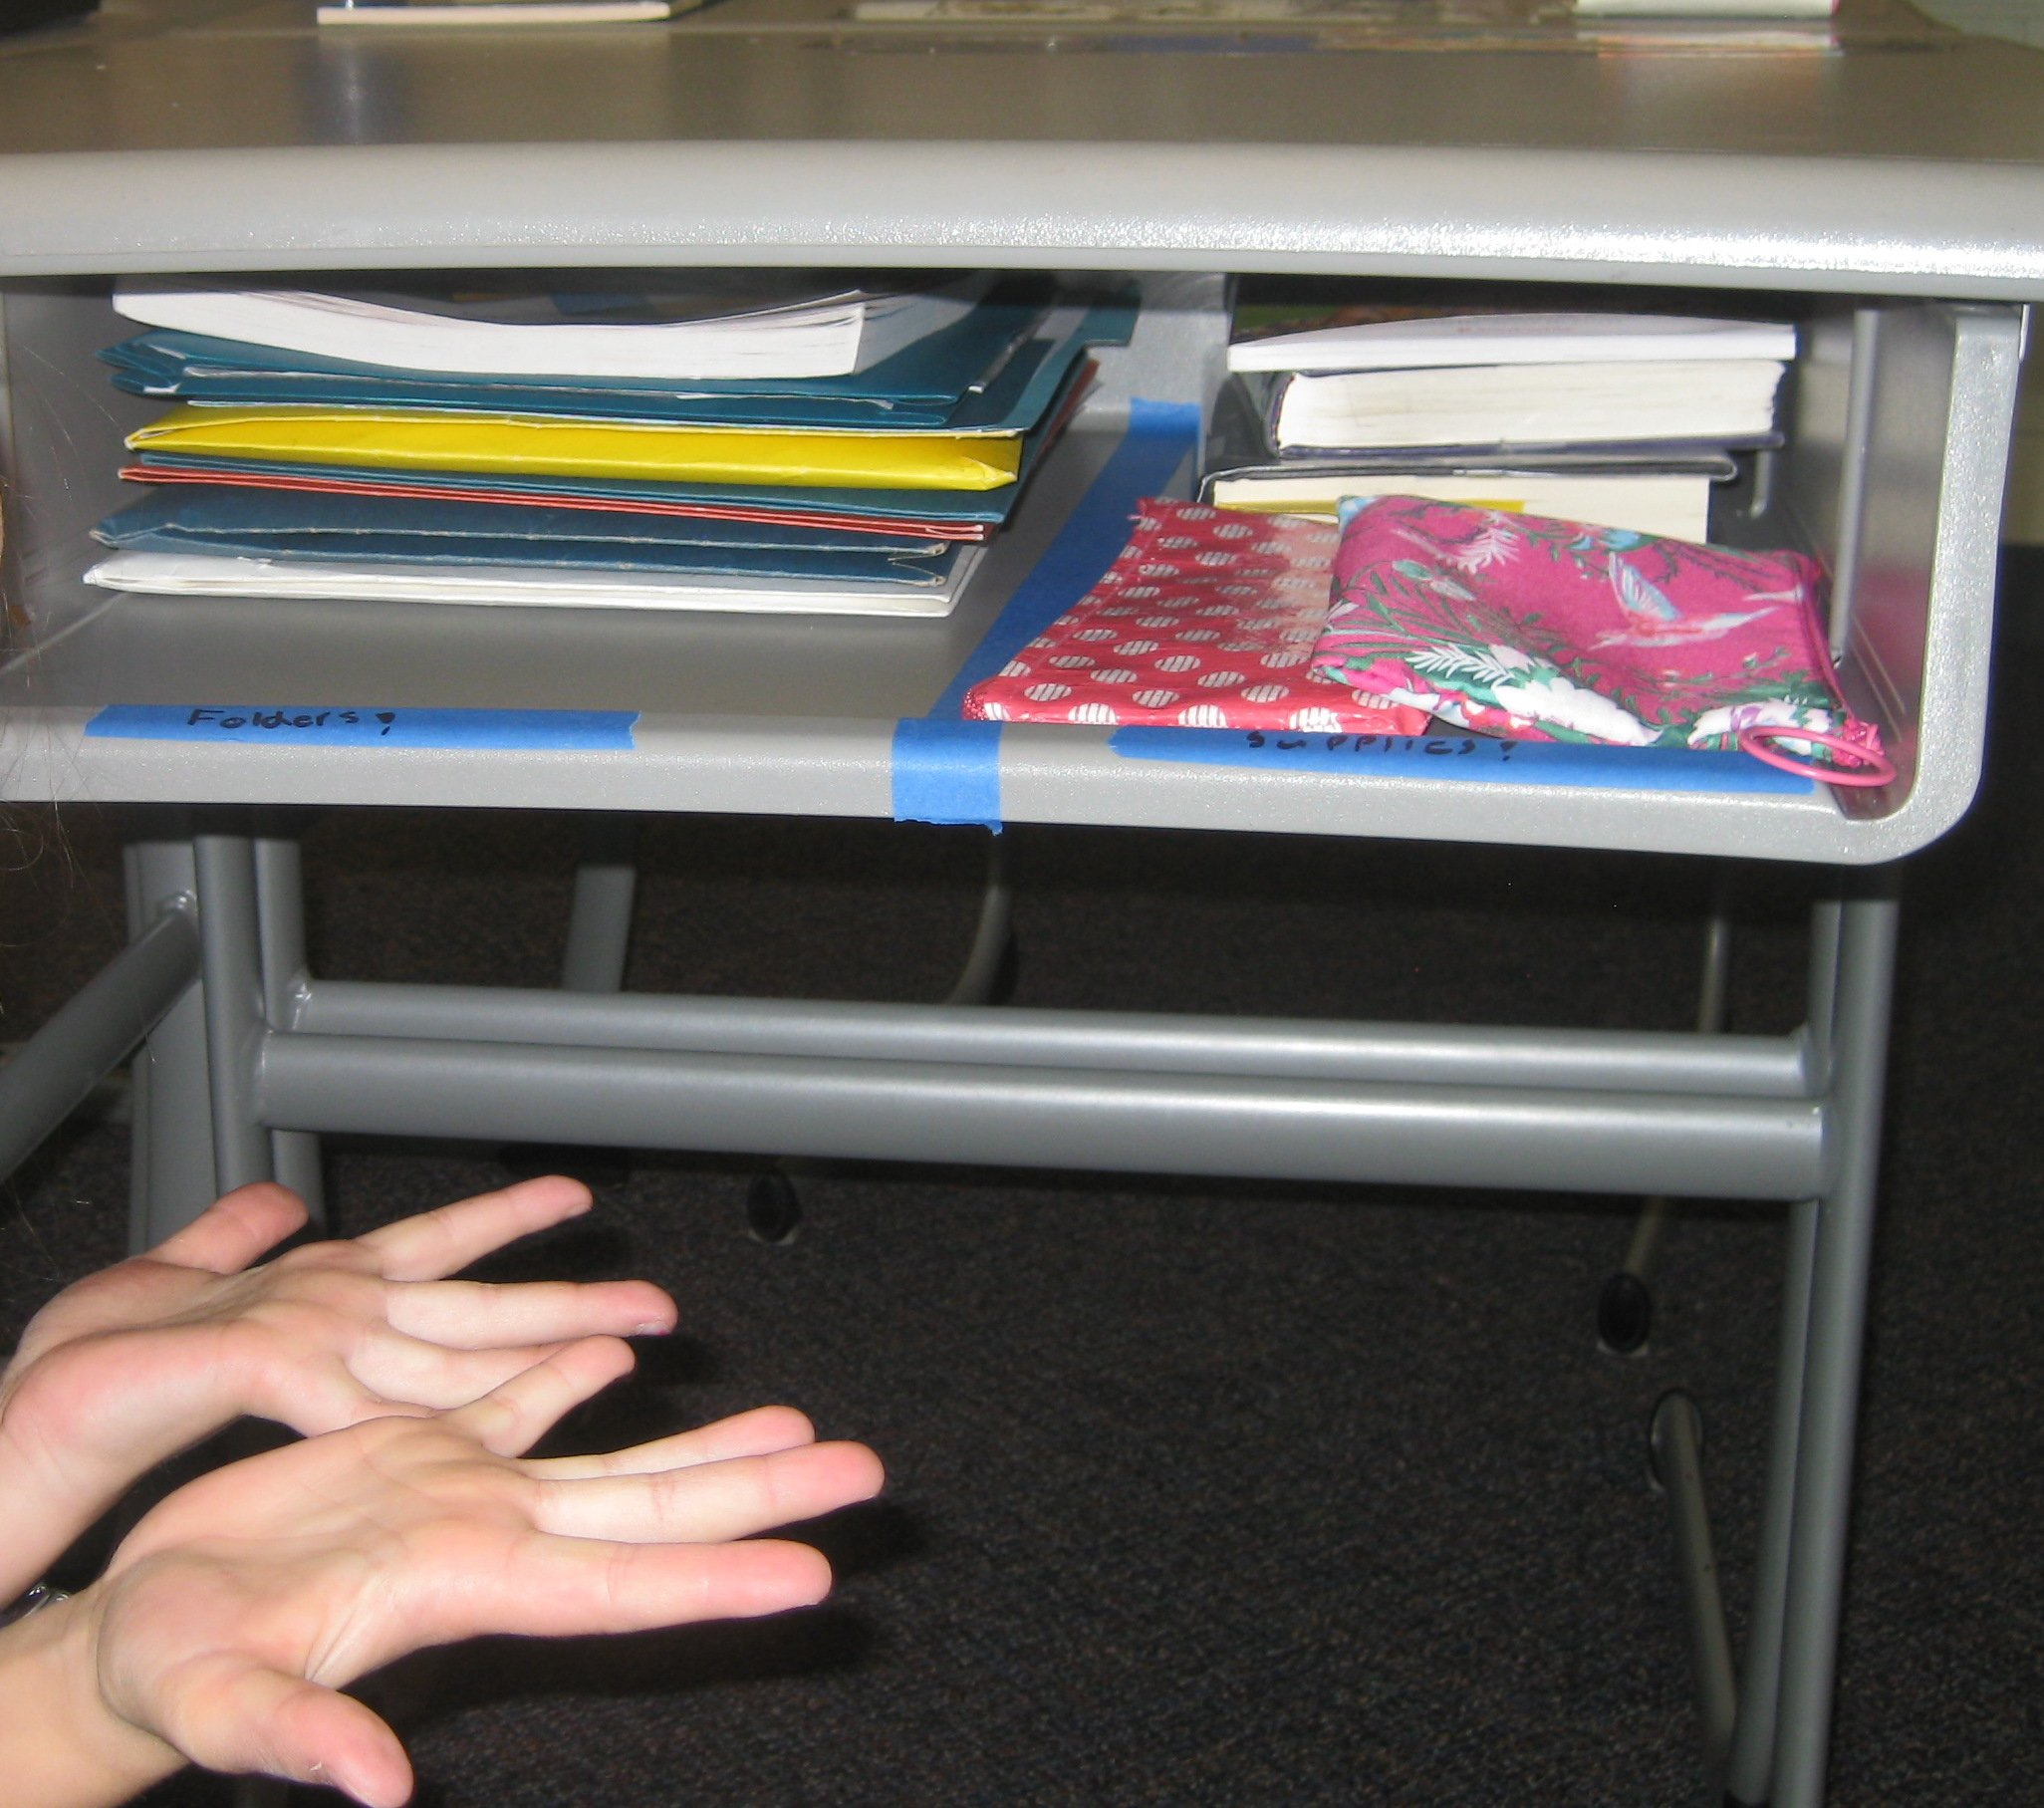 Executive functions 101 organizing a messy desk - How to organize your desk at home for school ...